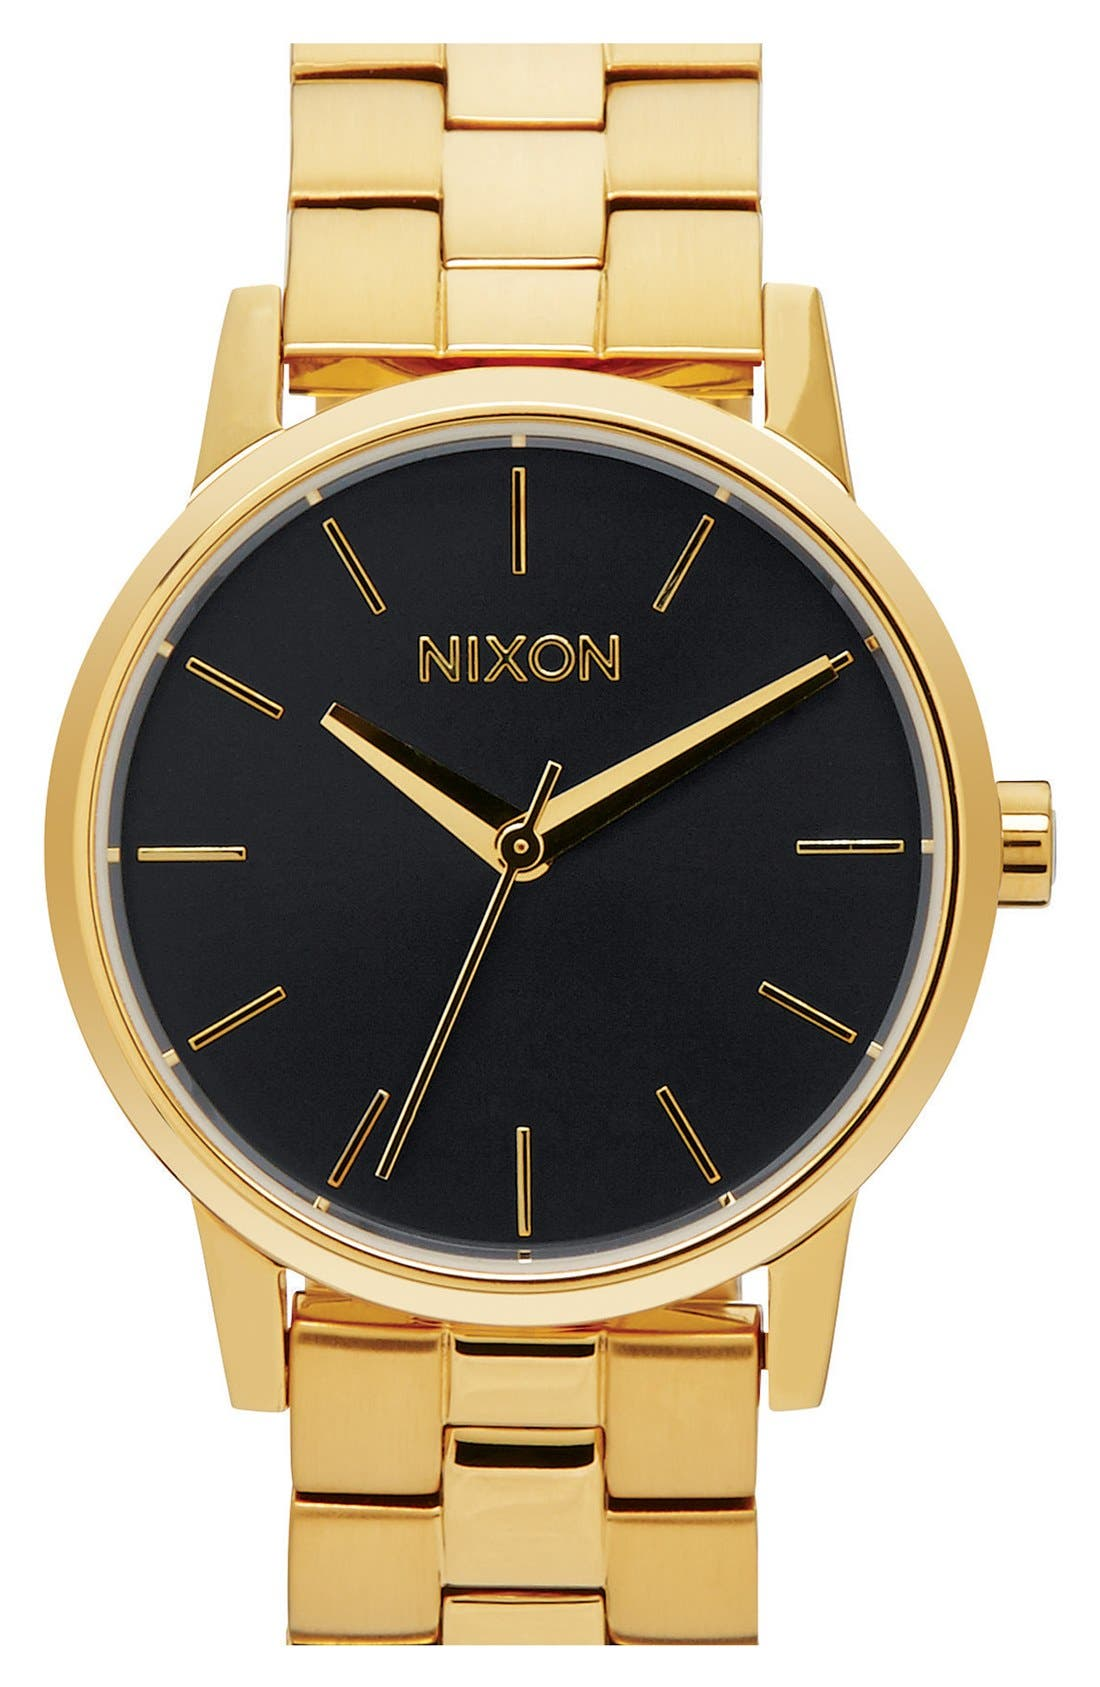 Main Image - Nixon 'Kensington' Bracelet Watch, 32mm